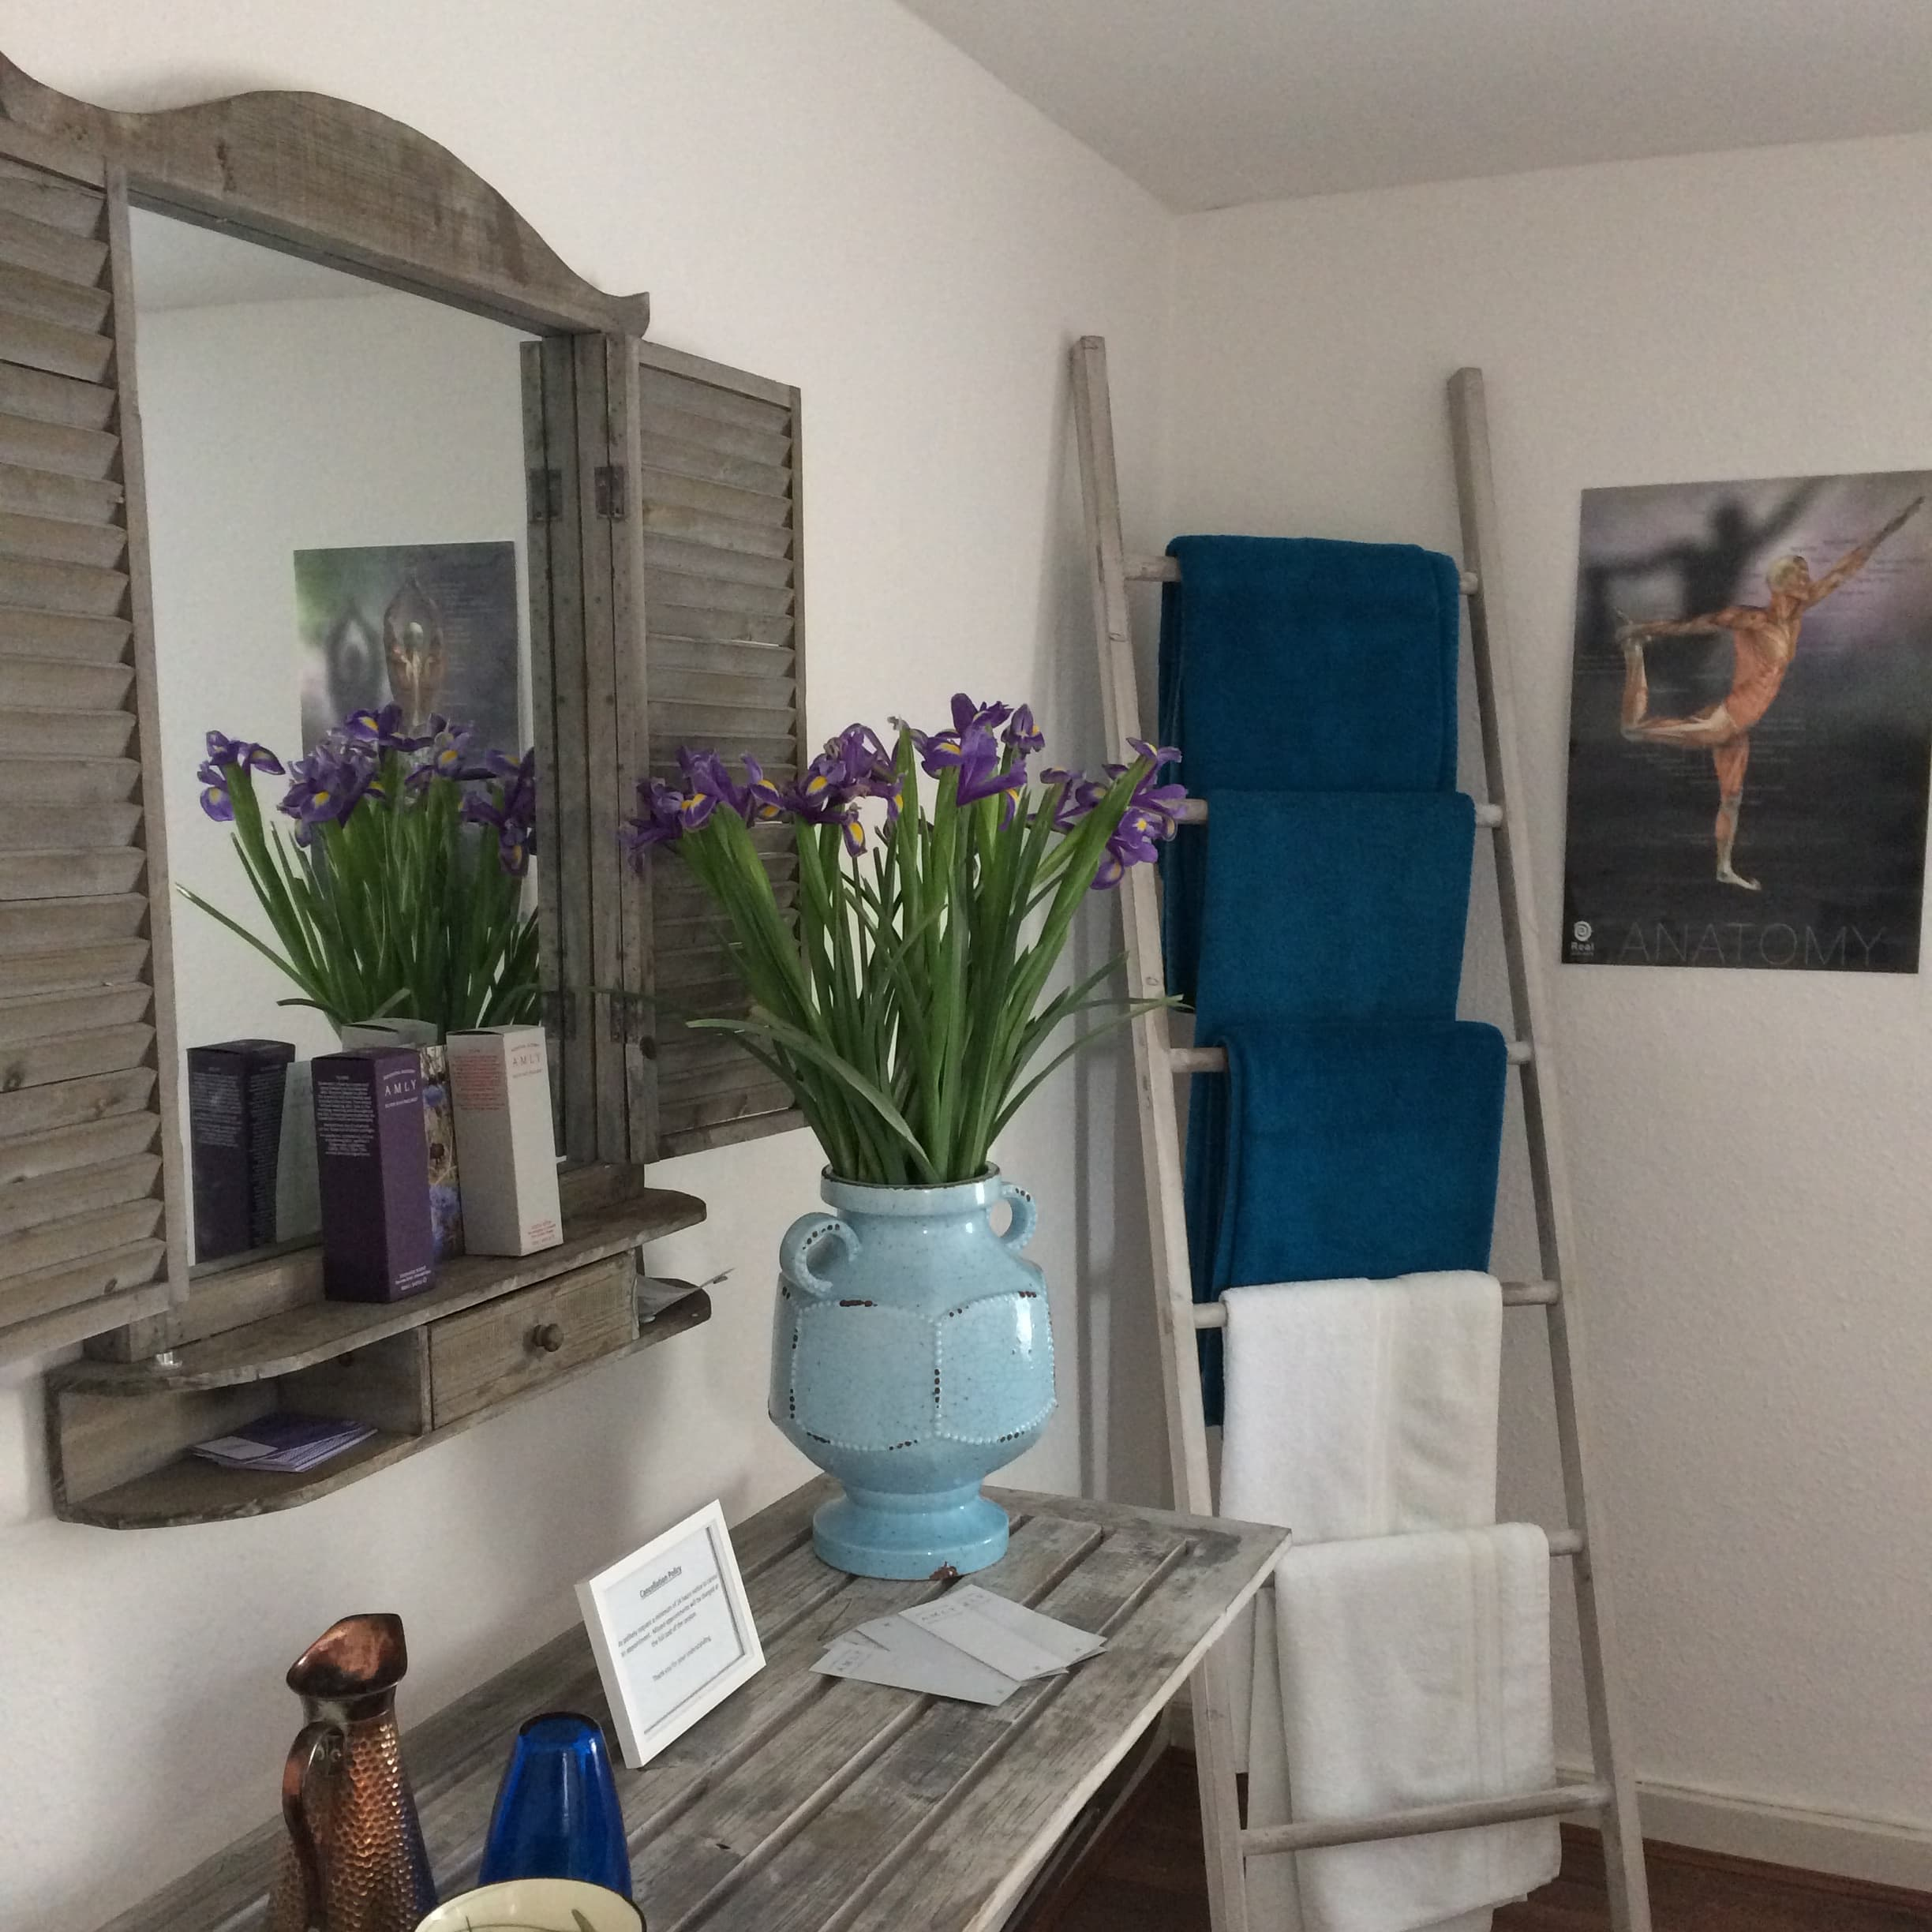 towels hanging on ladder mirror on wall with shutters shabby chic surface with blue vase purple flowers